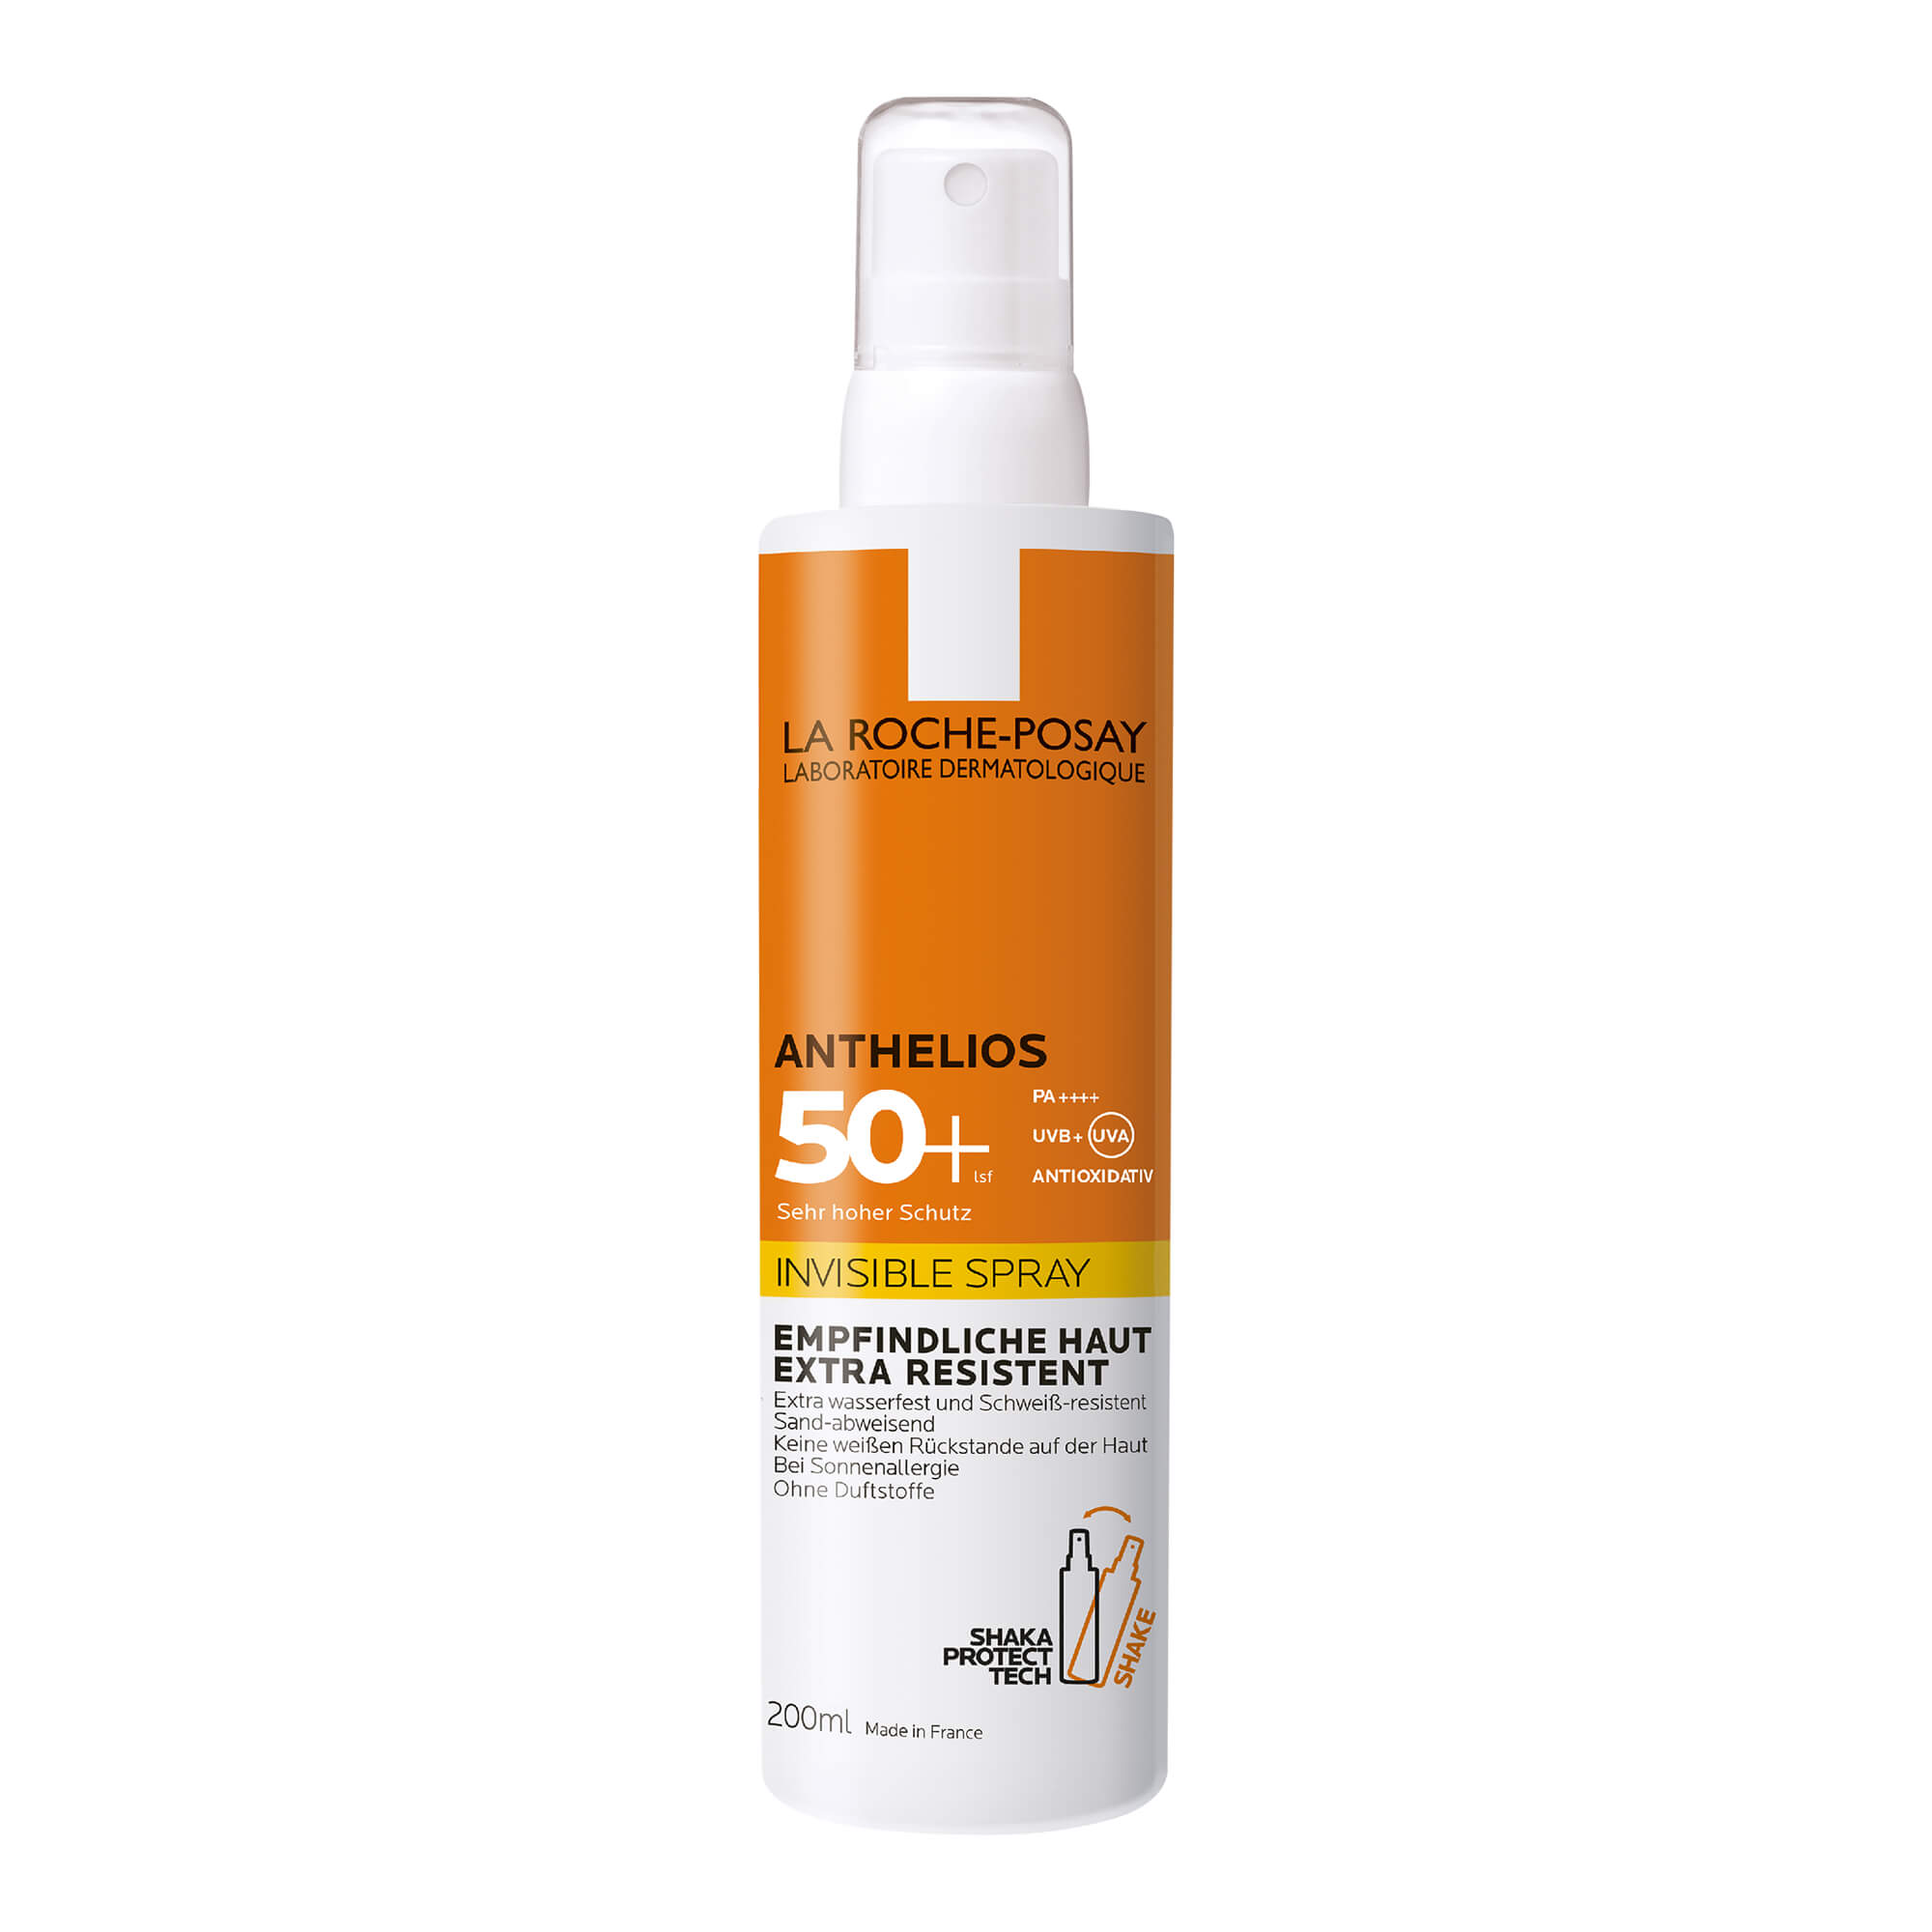 Roche-Posay Anthelios Invisible Spray Ohne Parfum LSF 50+